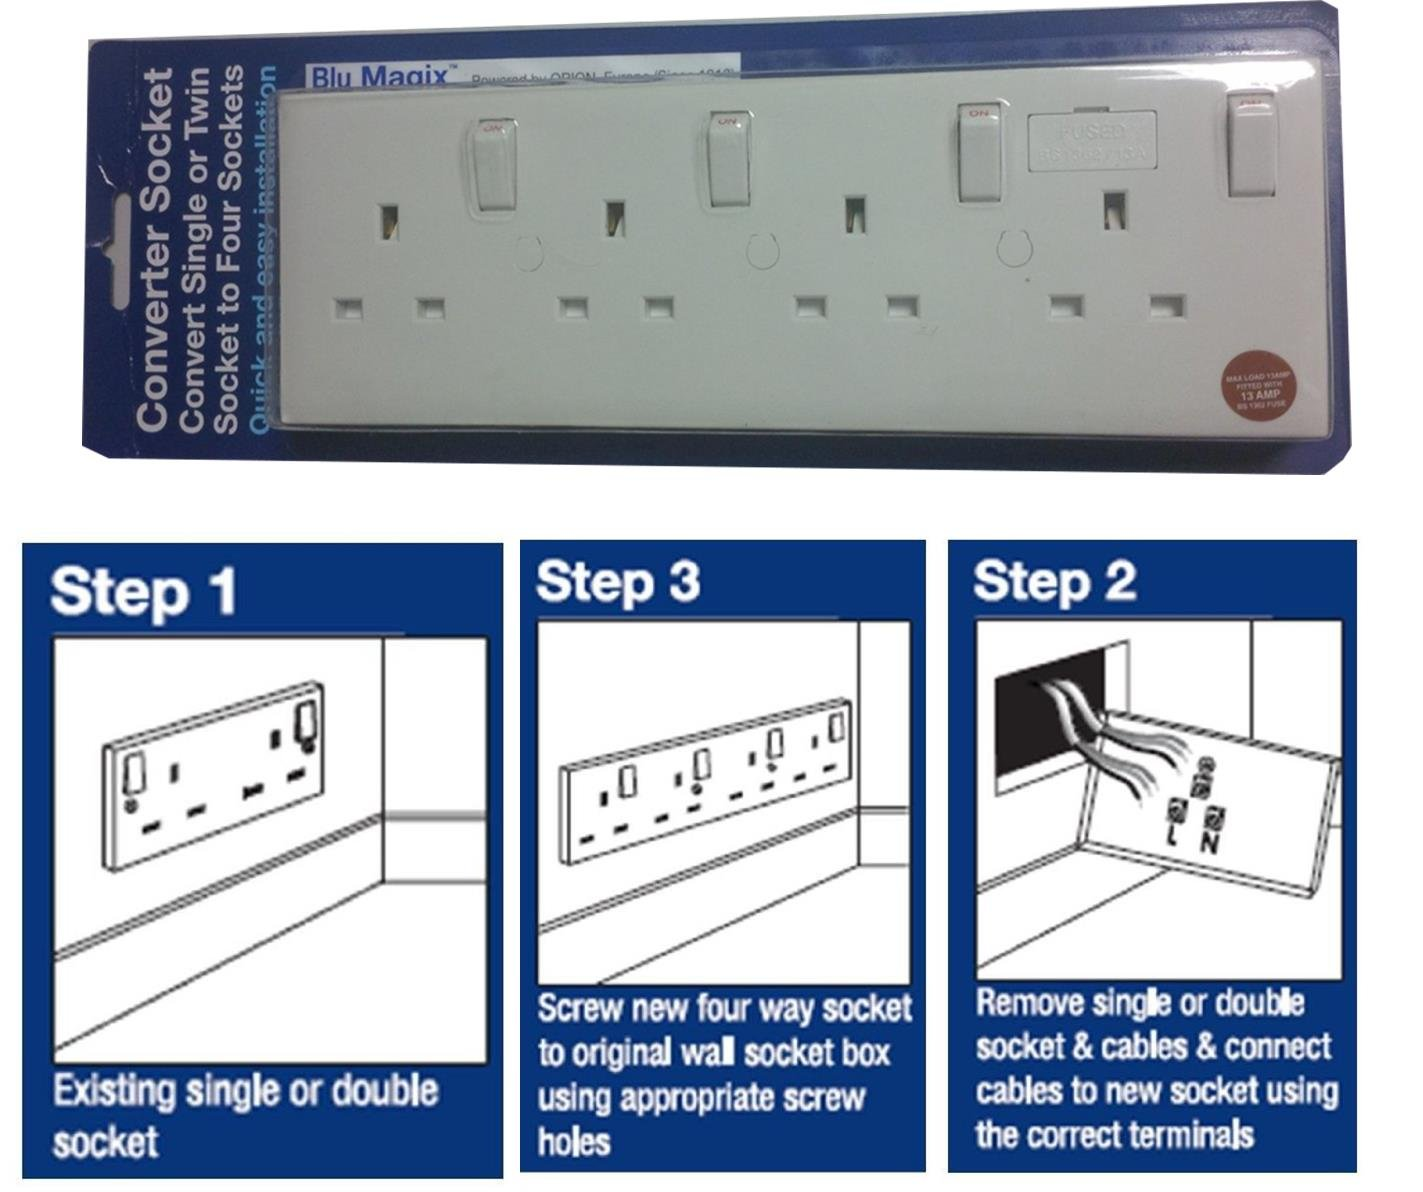 Blumagix Converter Socket Converts Single Or Twin To Four Electrical Outlet Wiring Uk Sockets Diy Tools